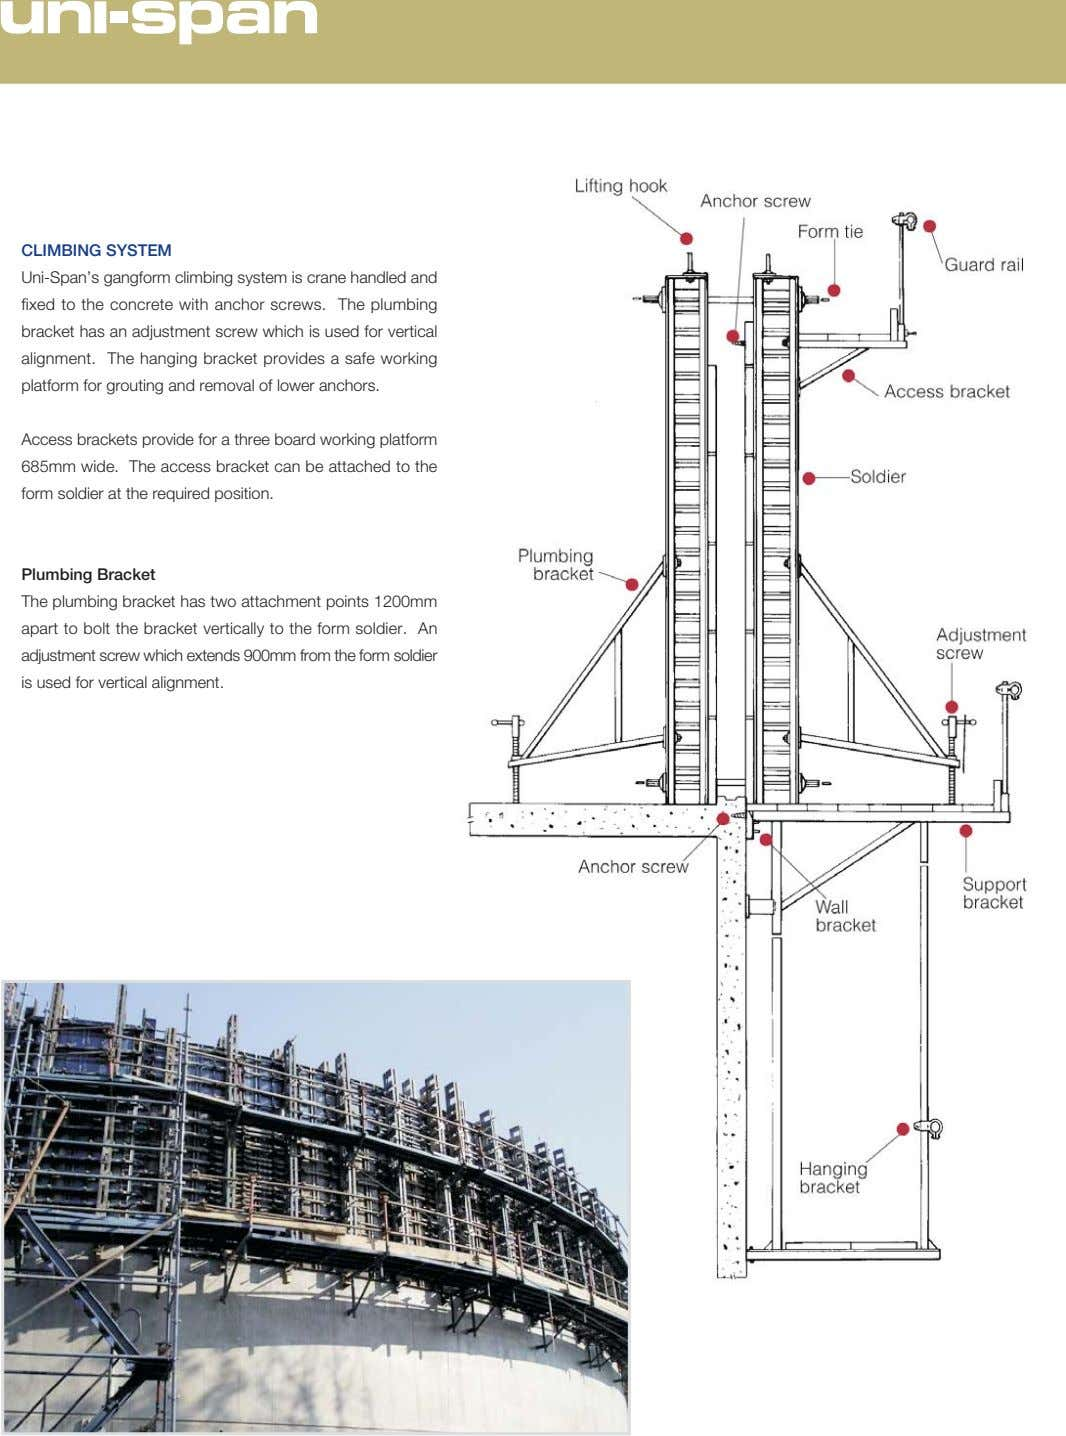 CLIMBING SYSTEM Uni-Span's gangform climbing system is crane handled and fixed to the concrete with